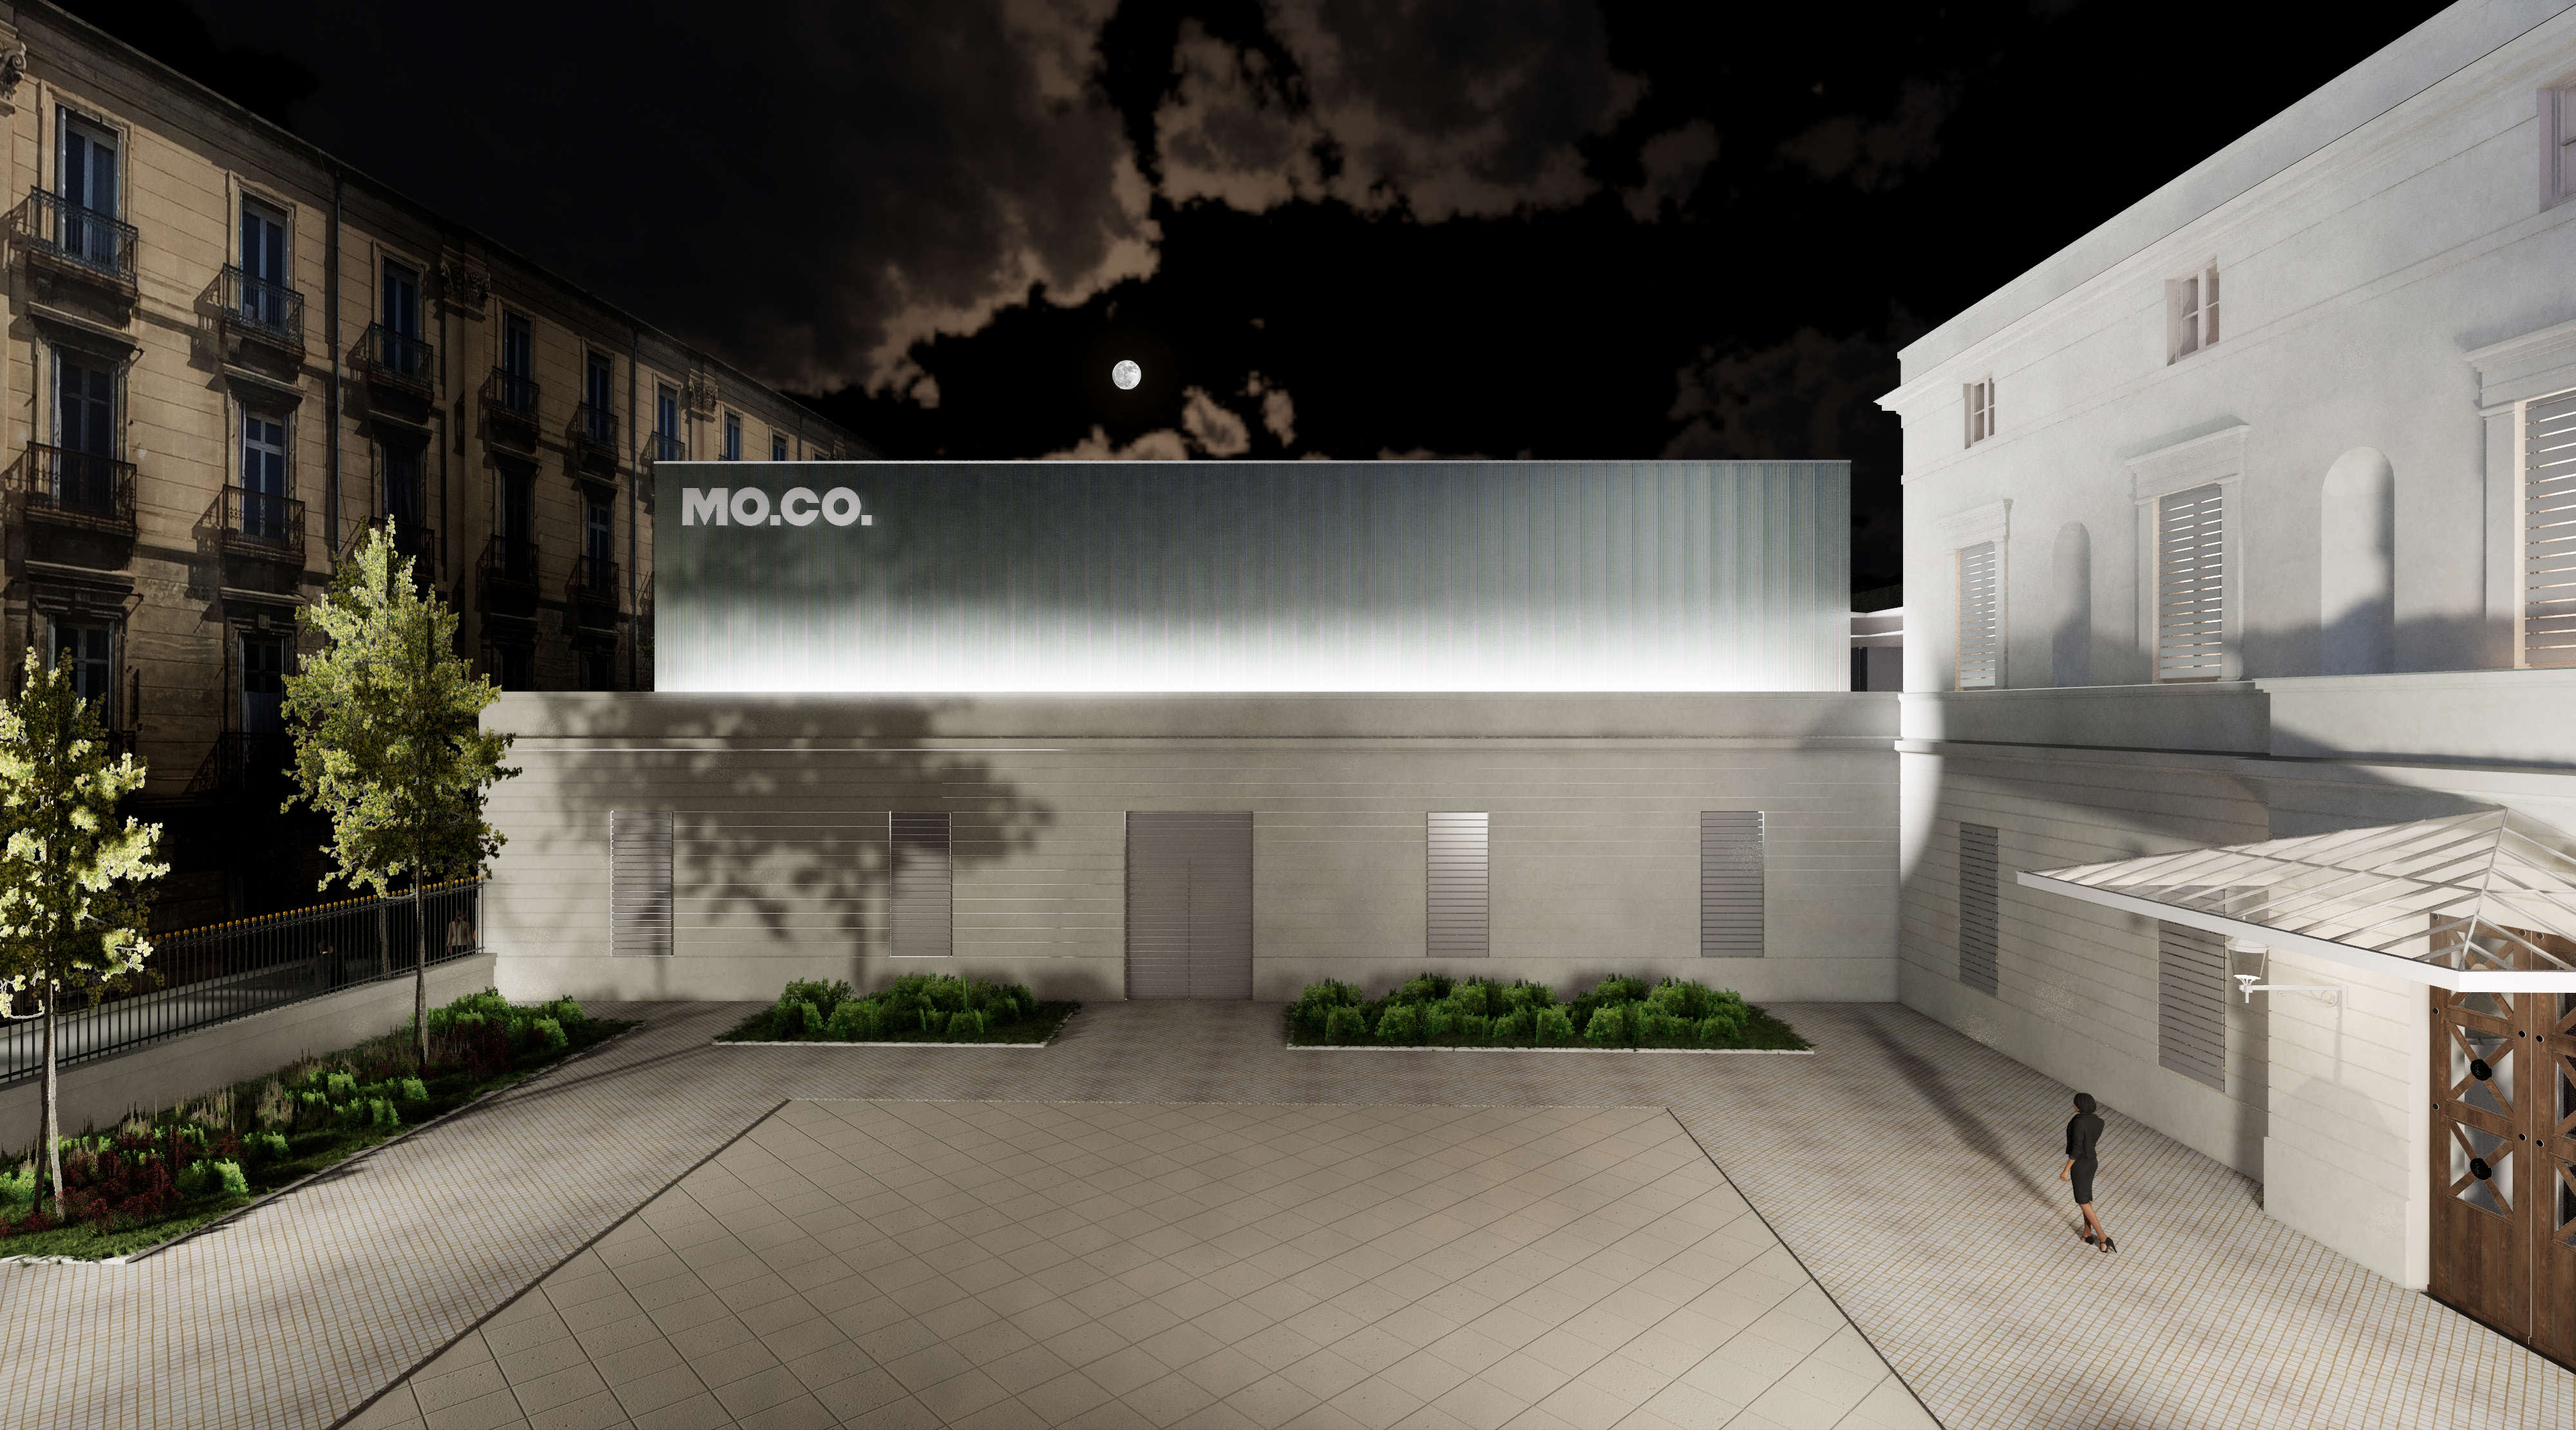 Moco Into The Heart Of Contemporary Art In Montpellier